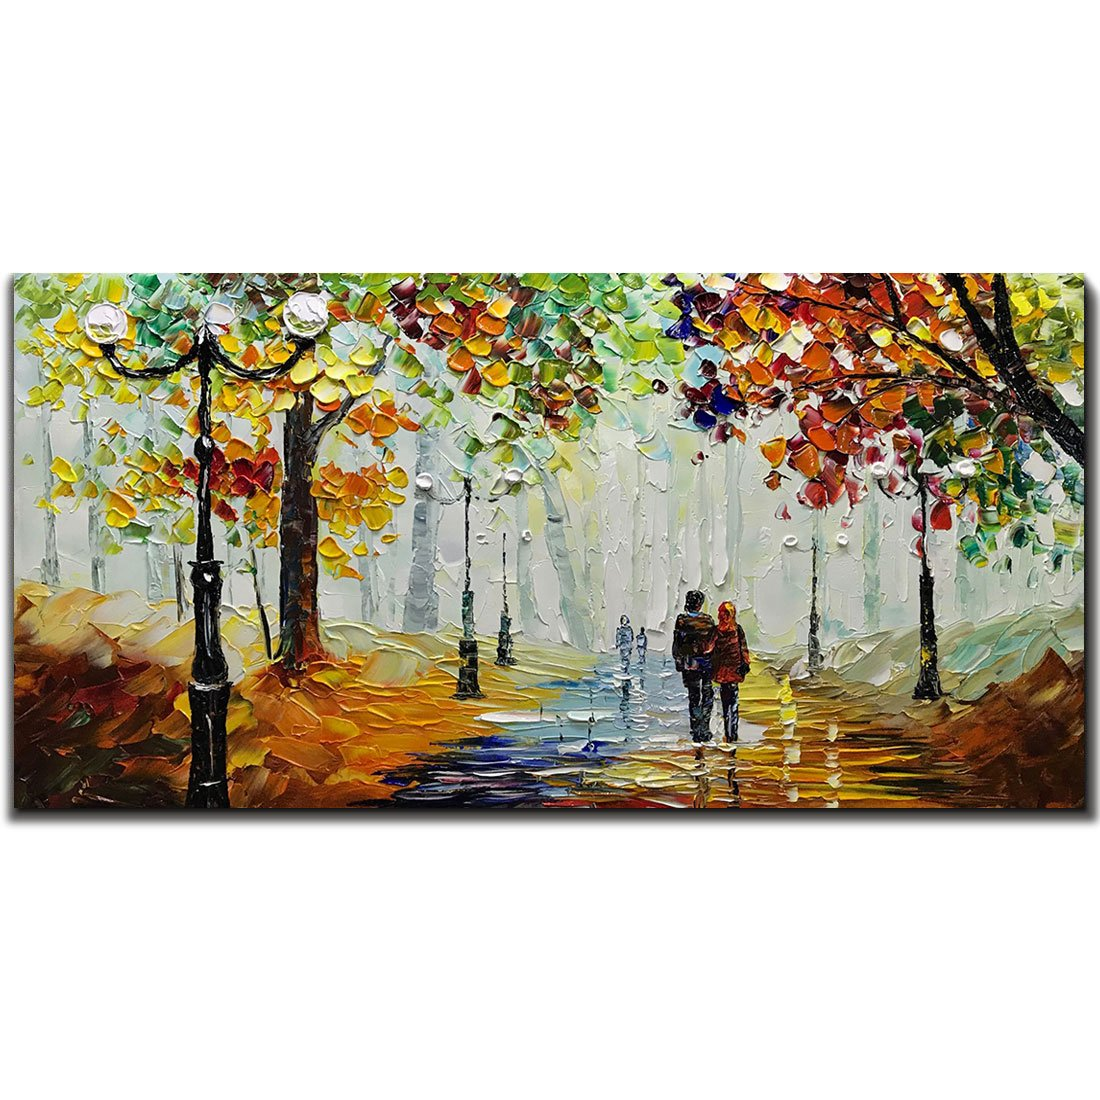 Yotree Paintings, 24x48 Inch Paintings Rainy Stree Oil Hand Painting Painting 3D Hand-Painted On Canvas Abstract Artwork Art Wood Inside Framed Hanging Wall Decoration Abstract Painting